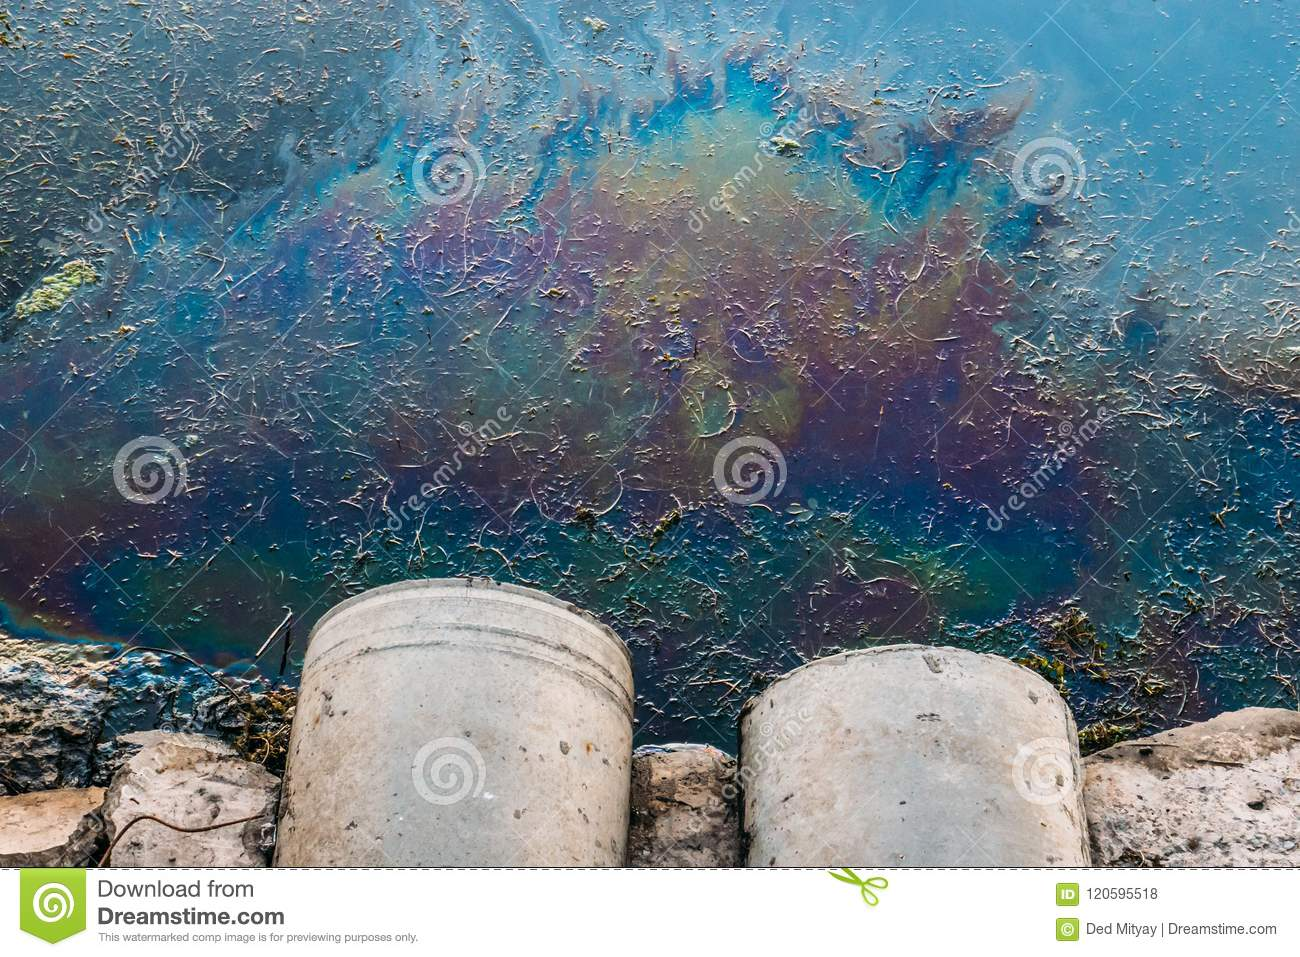 Sewer pipes at shore, stain of oil or fuel on water surface, nature pollution by toxic chemicals, dirty sea